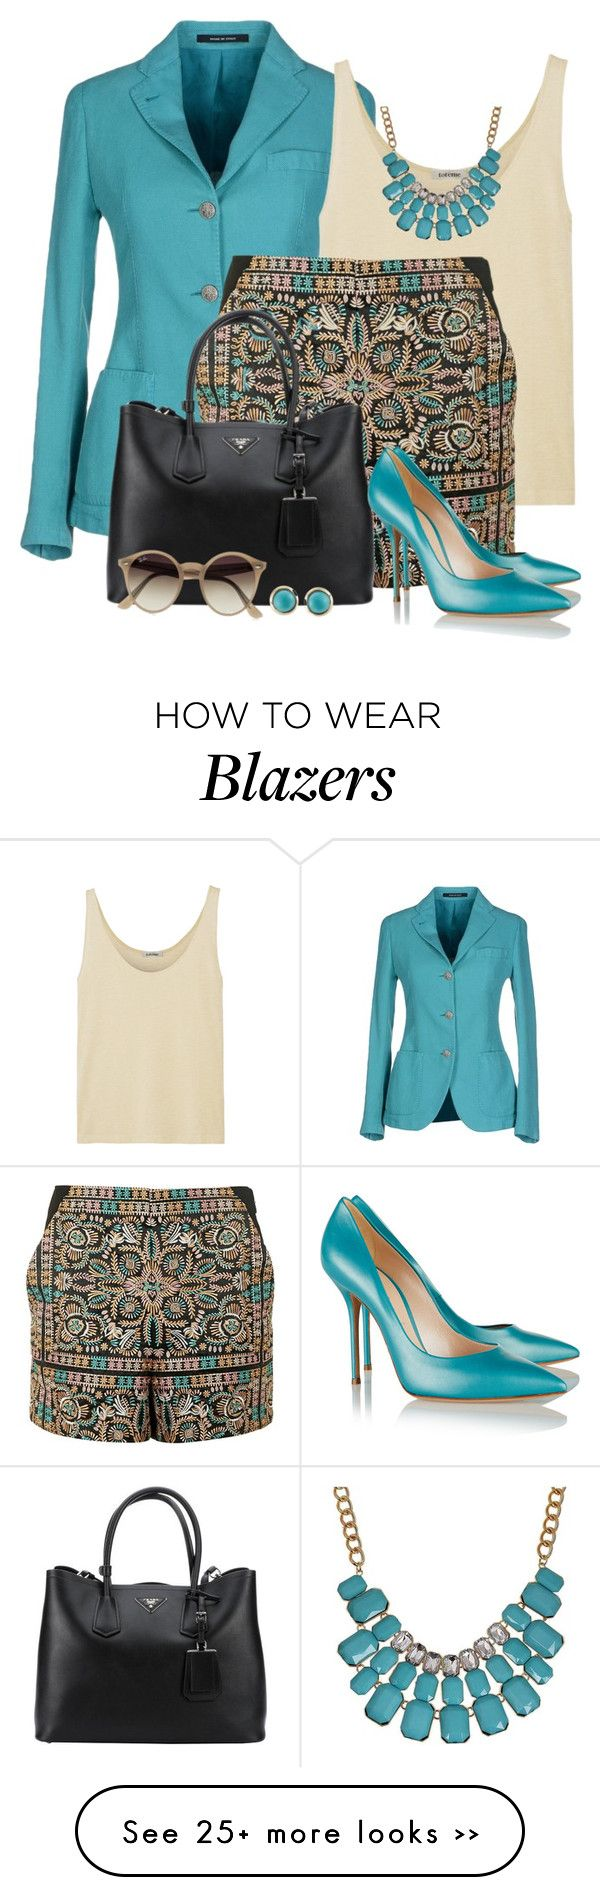 """High Wasted Shorts and Blazer"" by brendariley-1 on Polyvore featuring Tagliatore, Totême, Topshop, Prada, Casadei, Ray-Ban and Laura Lee"